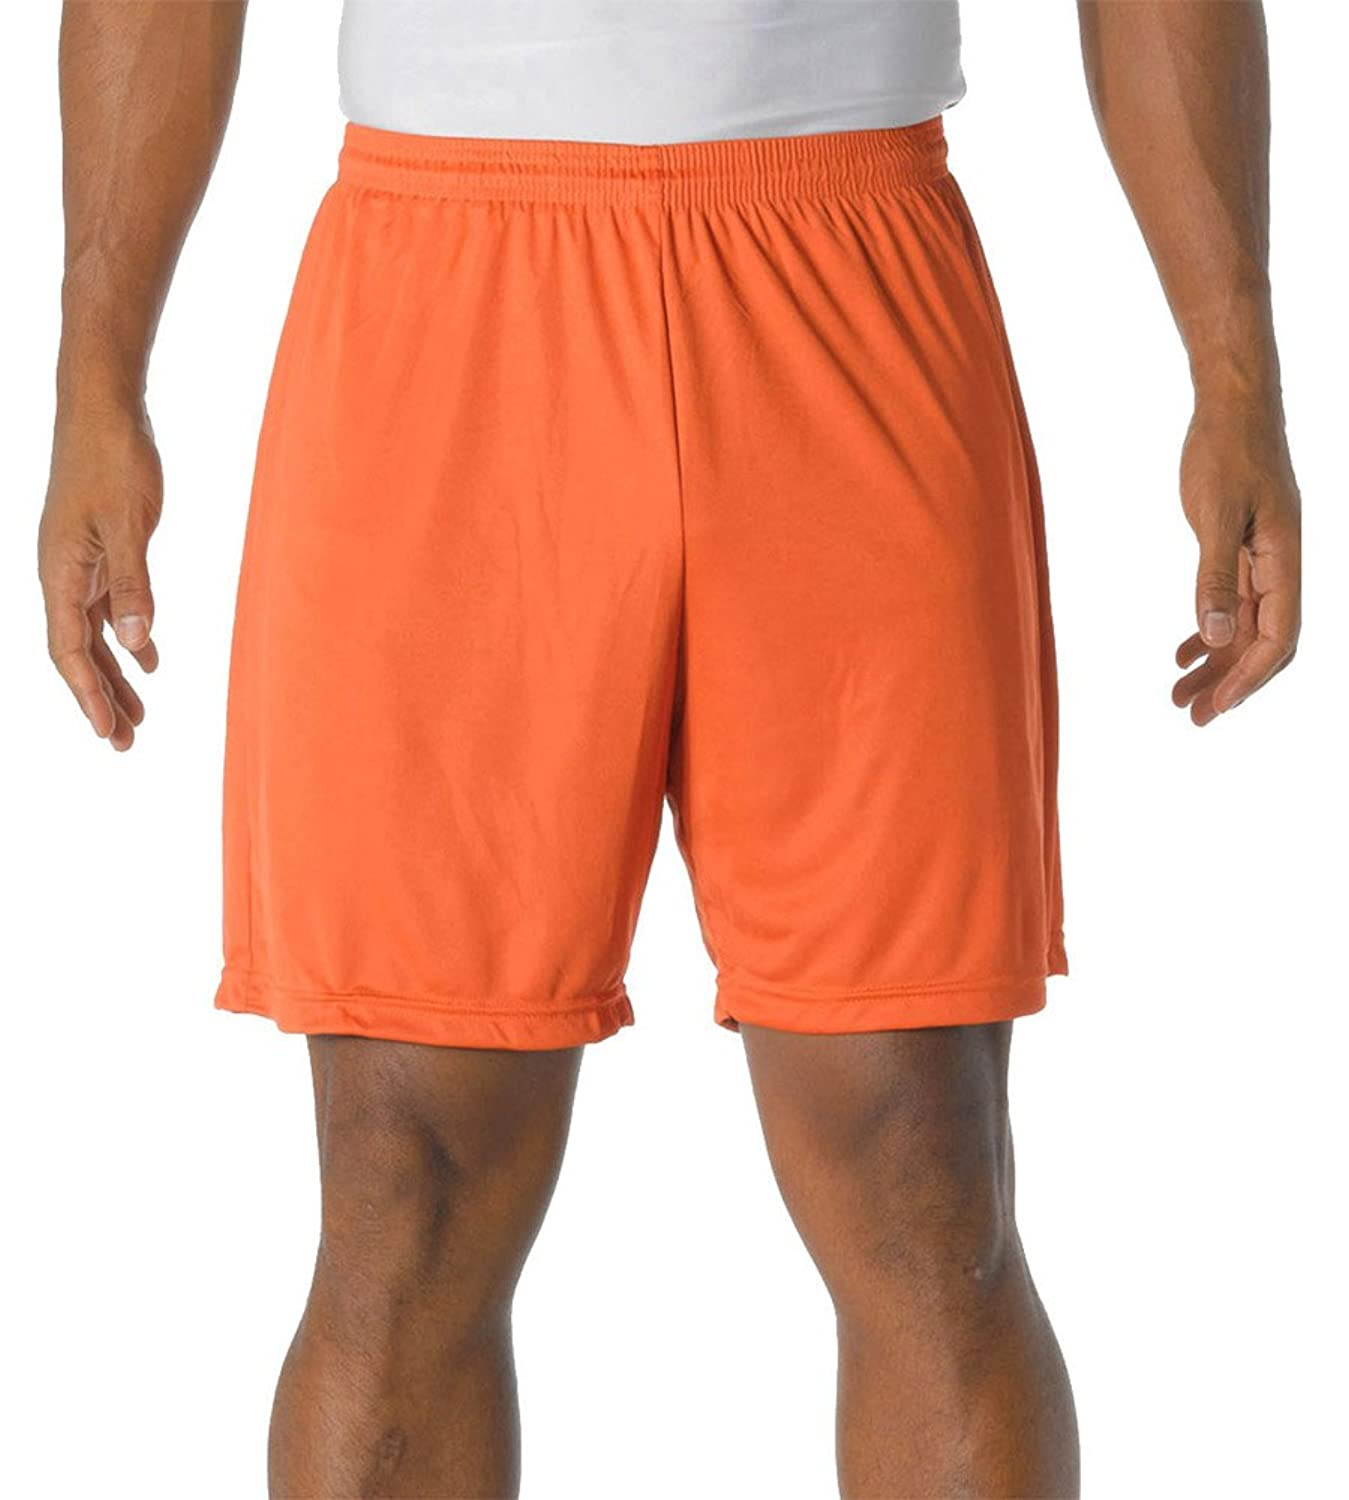 A4 Youth Cool Moisture Ultra Knit Resists Performance Short for cheap